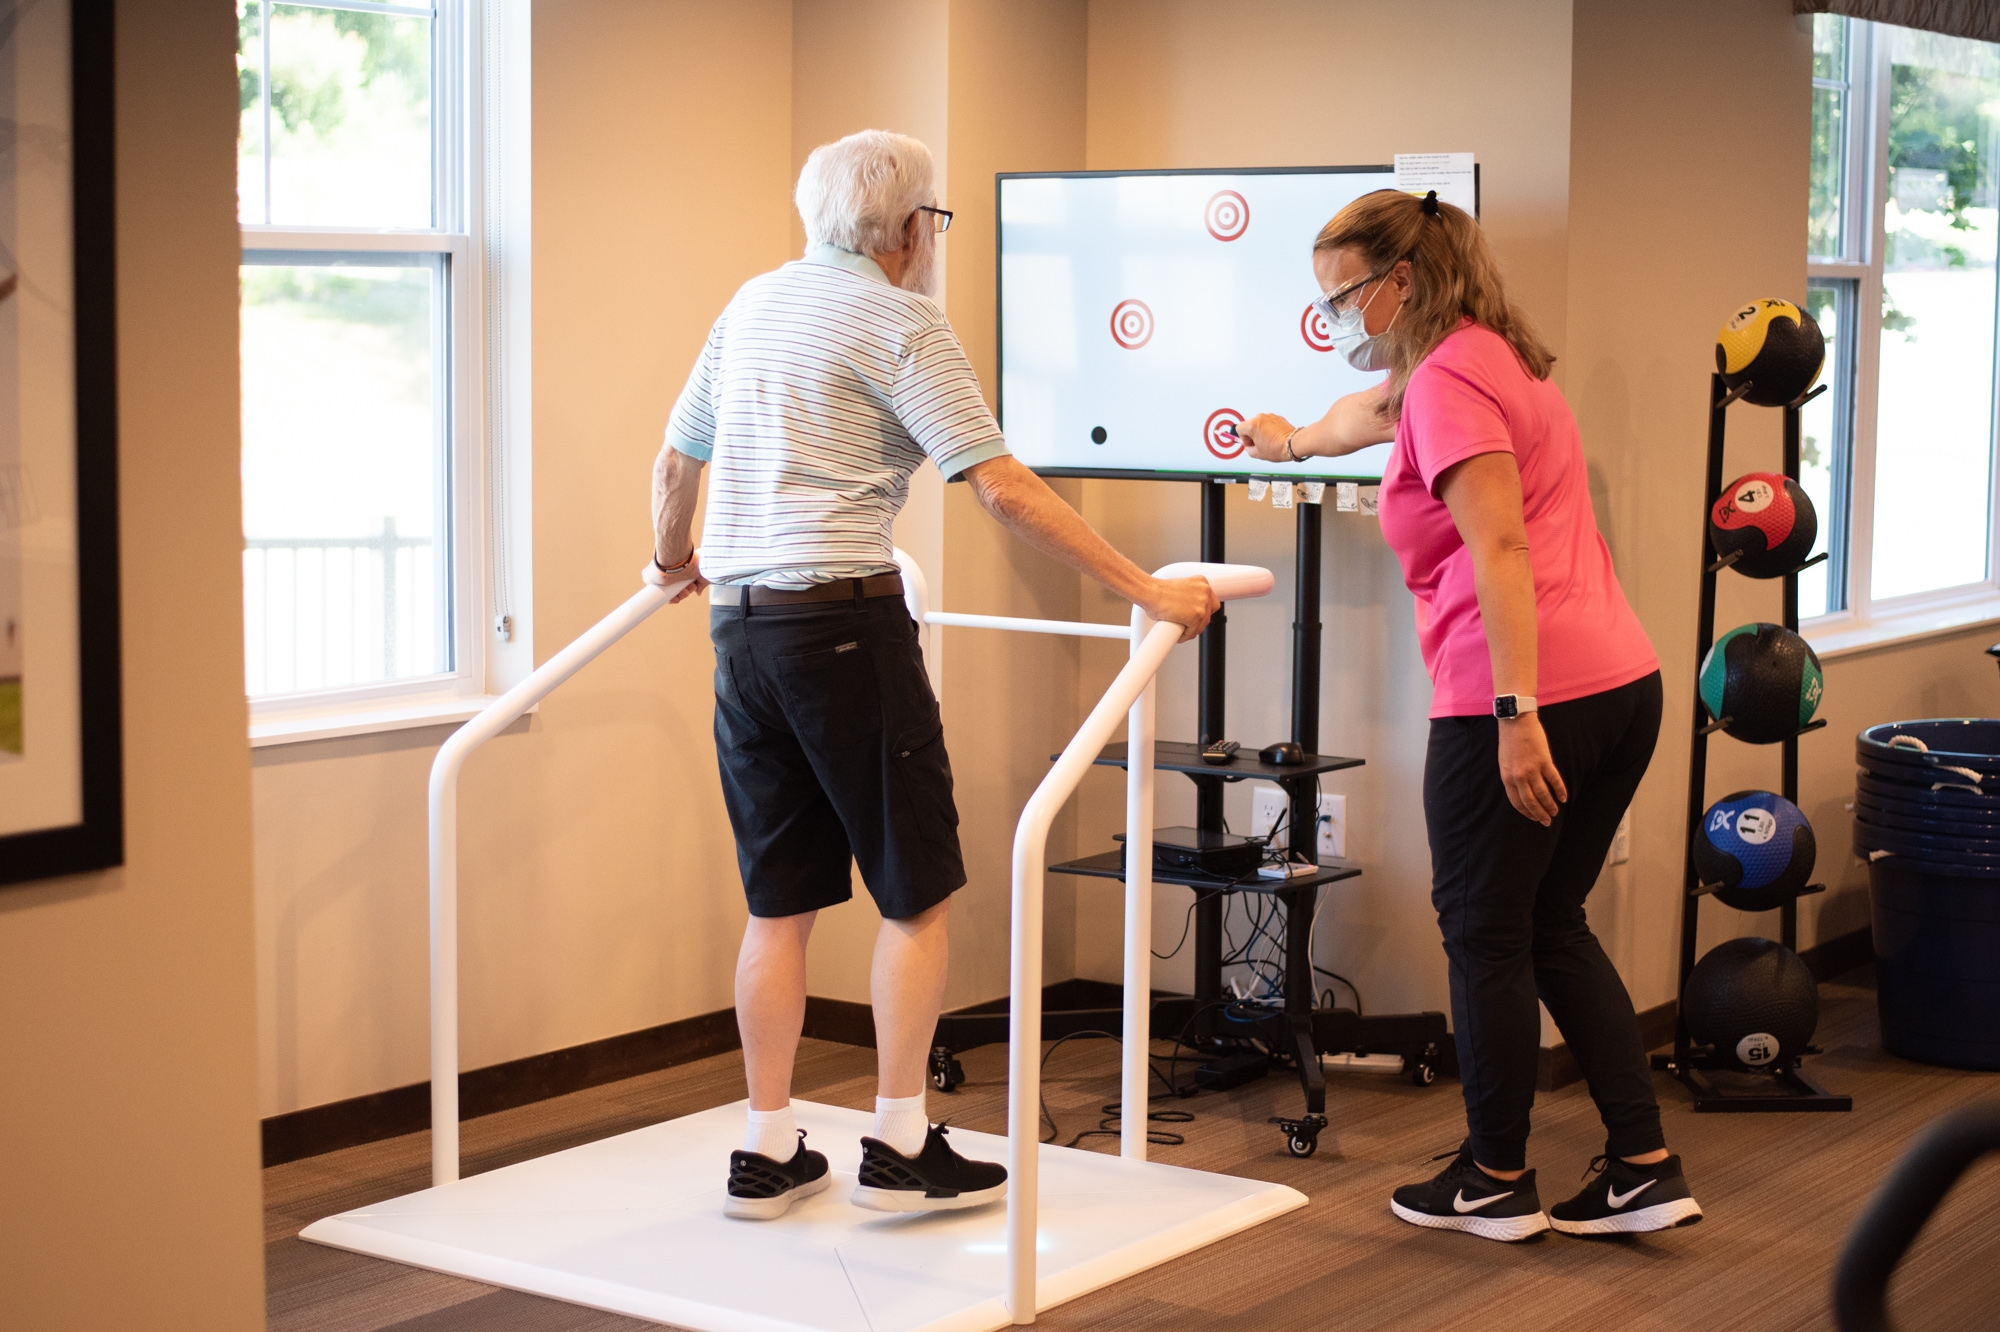 Roger is back on his feet: Parkinson's treatment through exercise